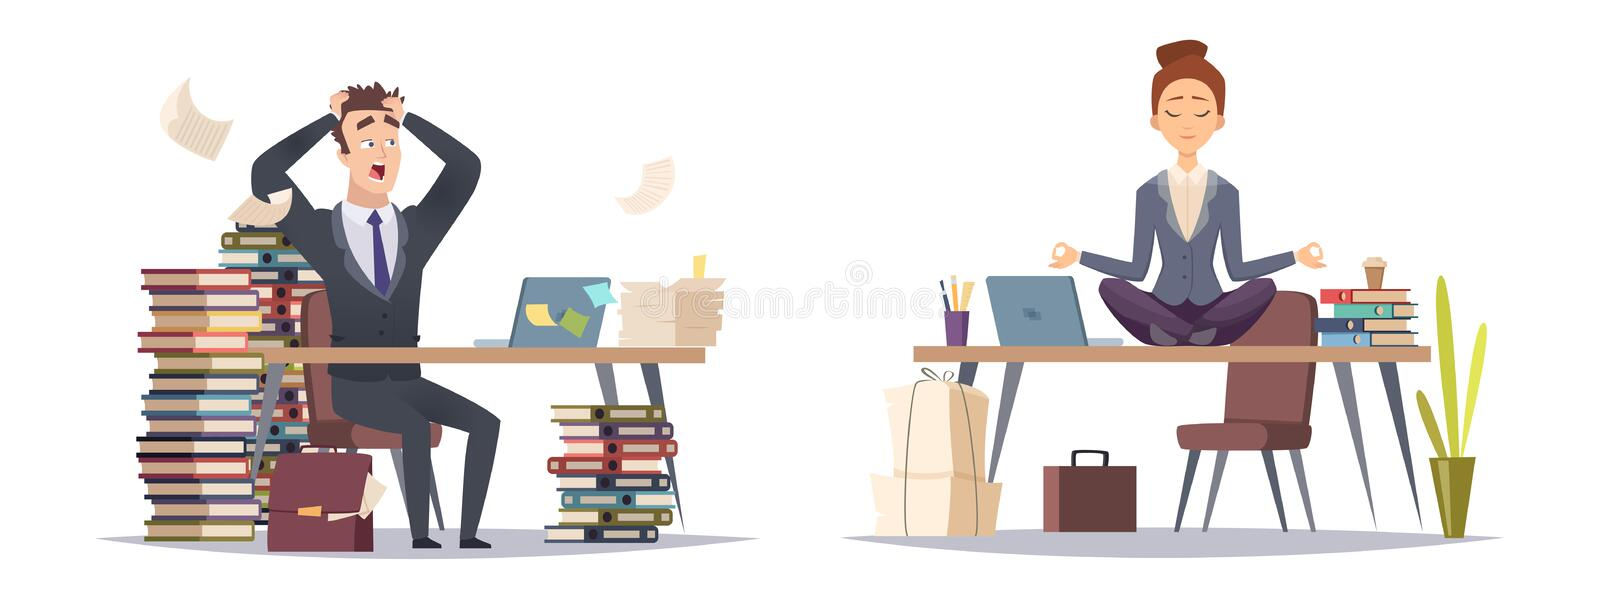 Deadline panicked businessman and organized business woman. Two type of businesspeople vector concept royalty free illustration